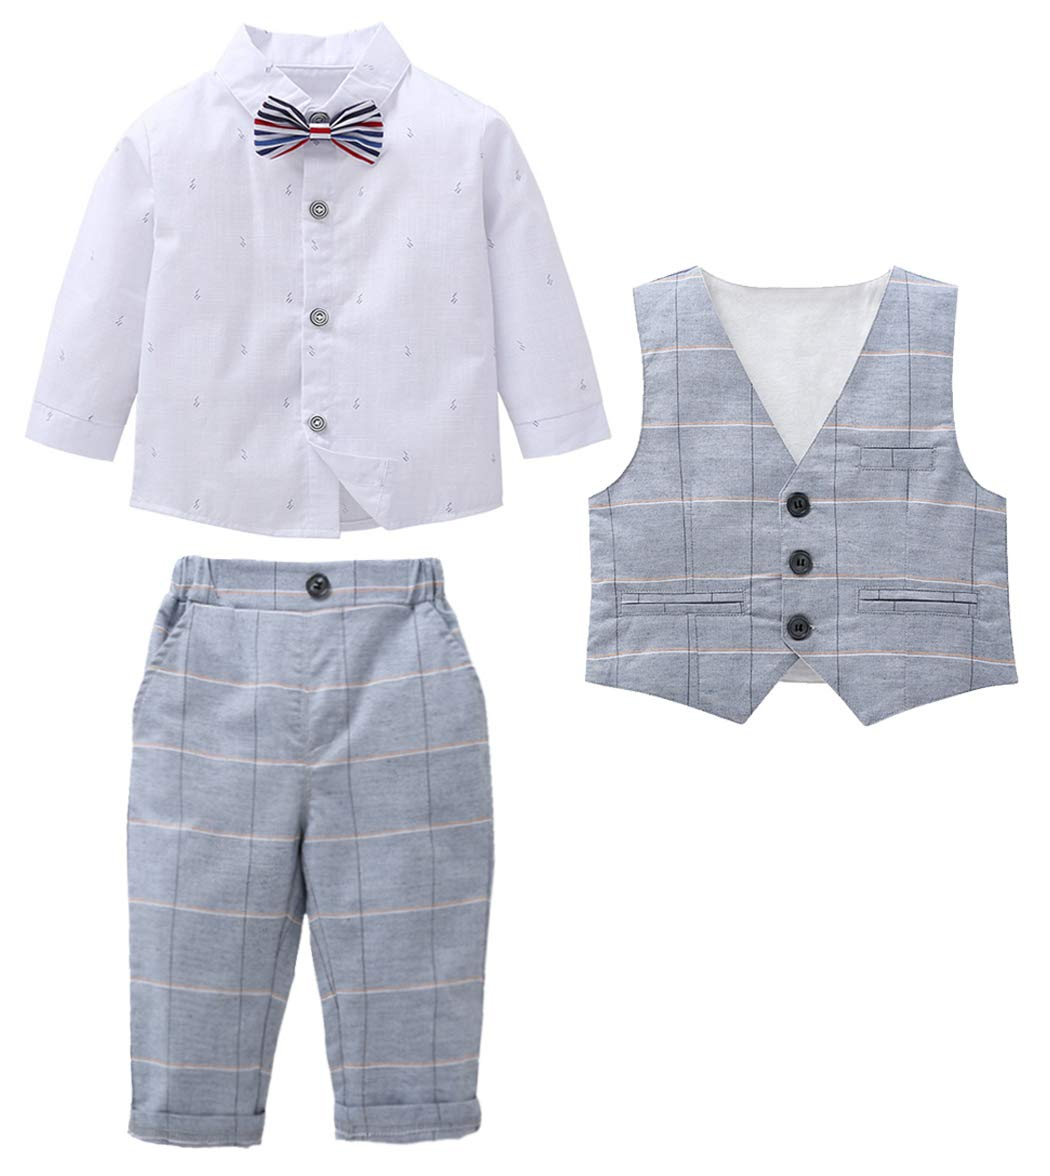 MetCuento Baby Boy Formal Outfit Bowtie Tuxedo White Shirt Long Sleeve Gentleman Formal 3 Pcs Dress Shirt 18-24 Months by MetCuento